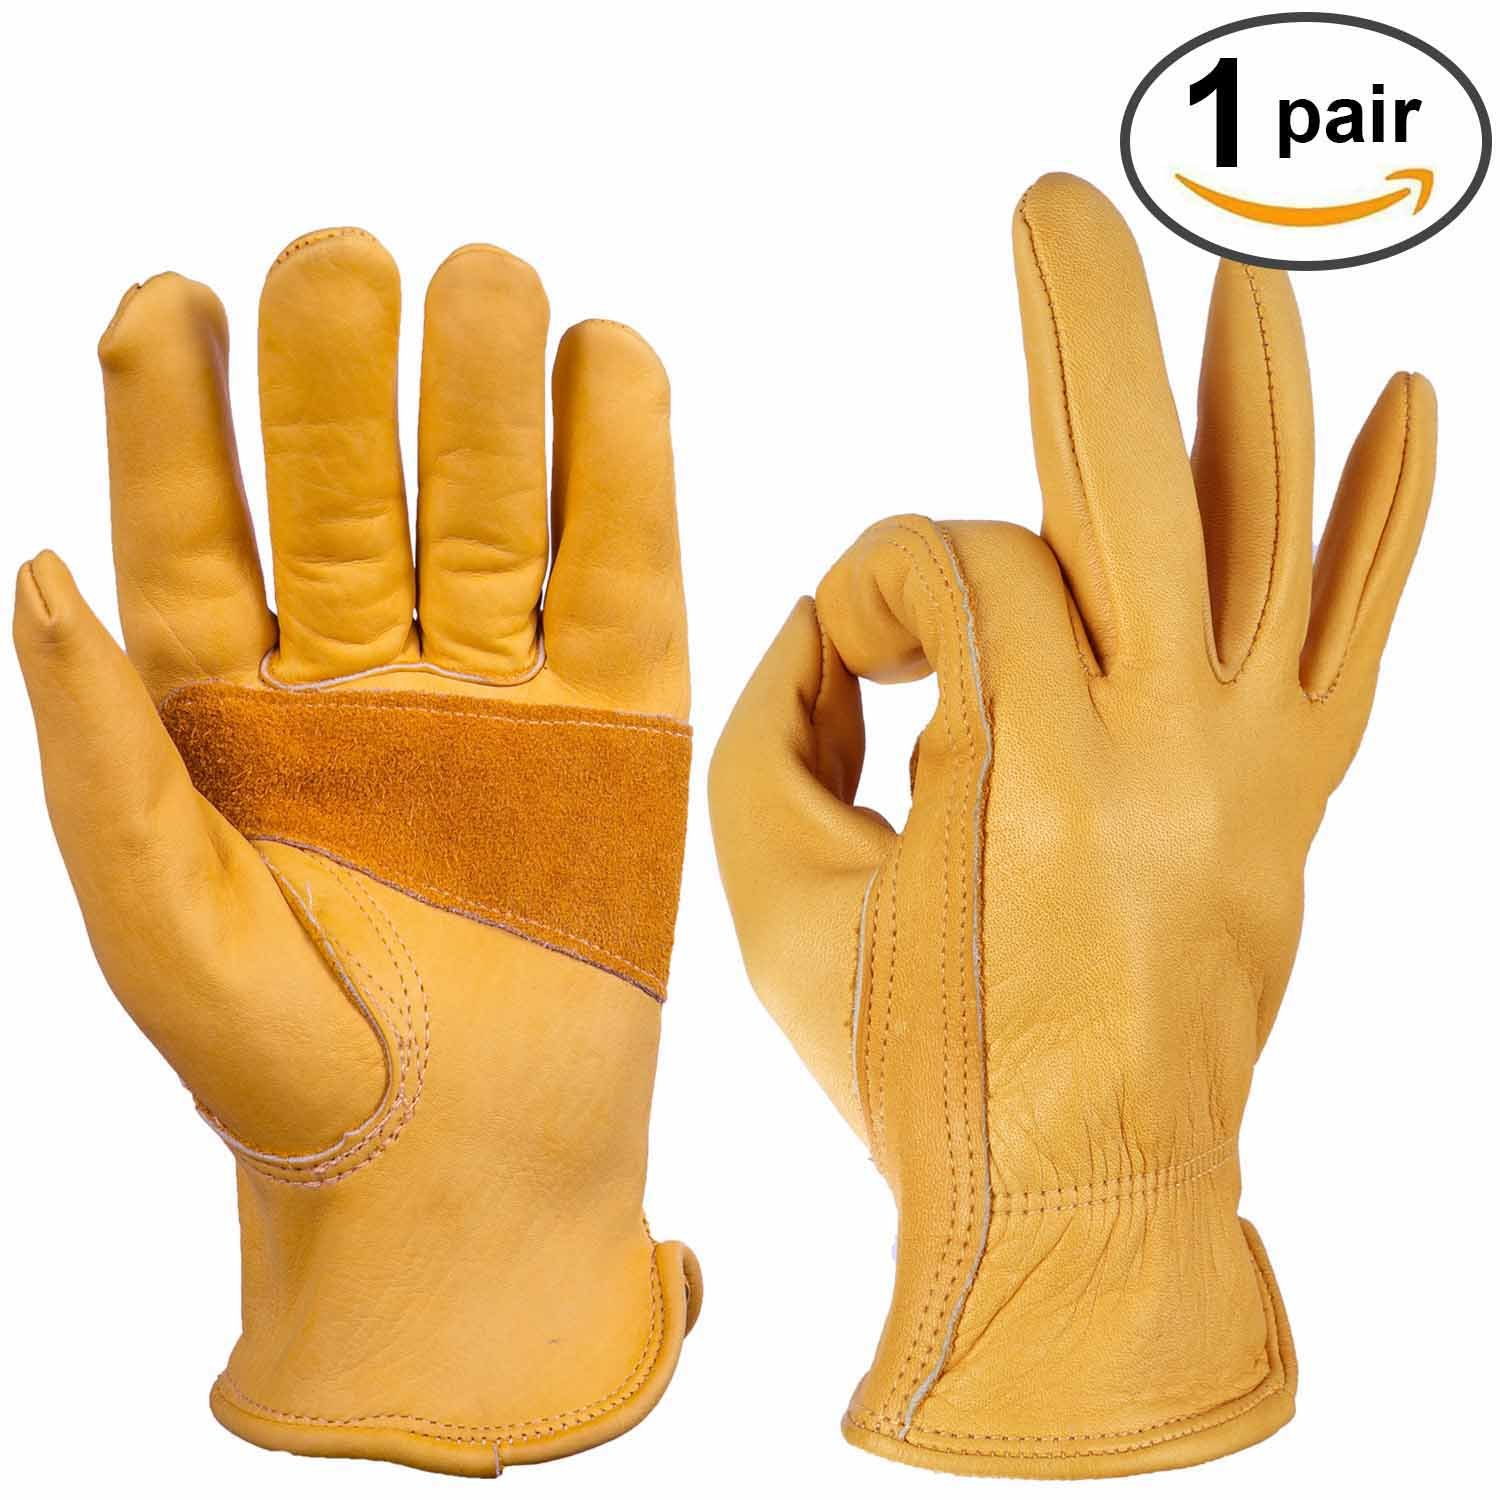 Leather work gloves sale - Ozero Leather Work Gloves For Gardening Men Women With Elastic Wrist Large